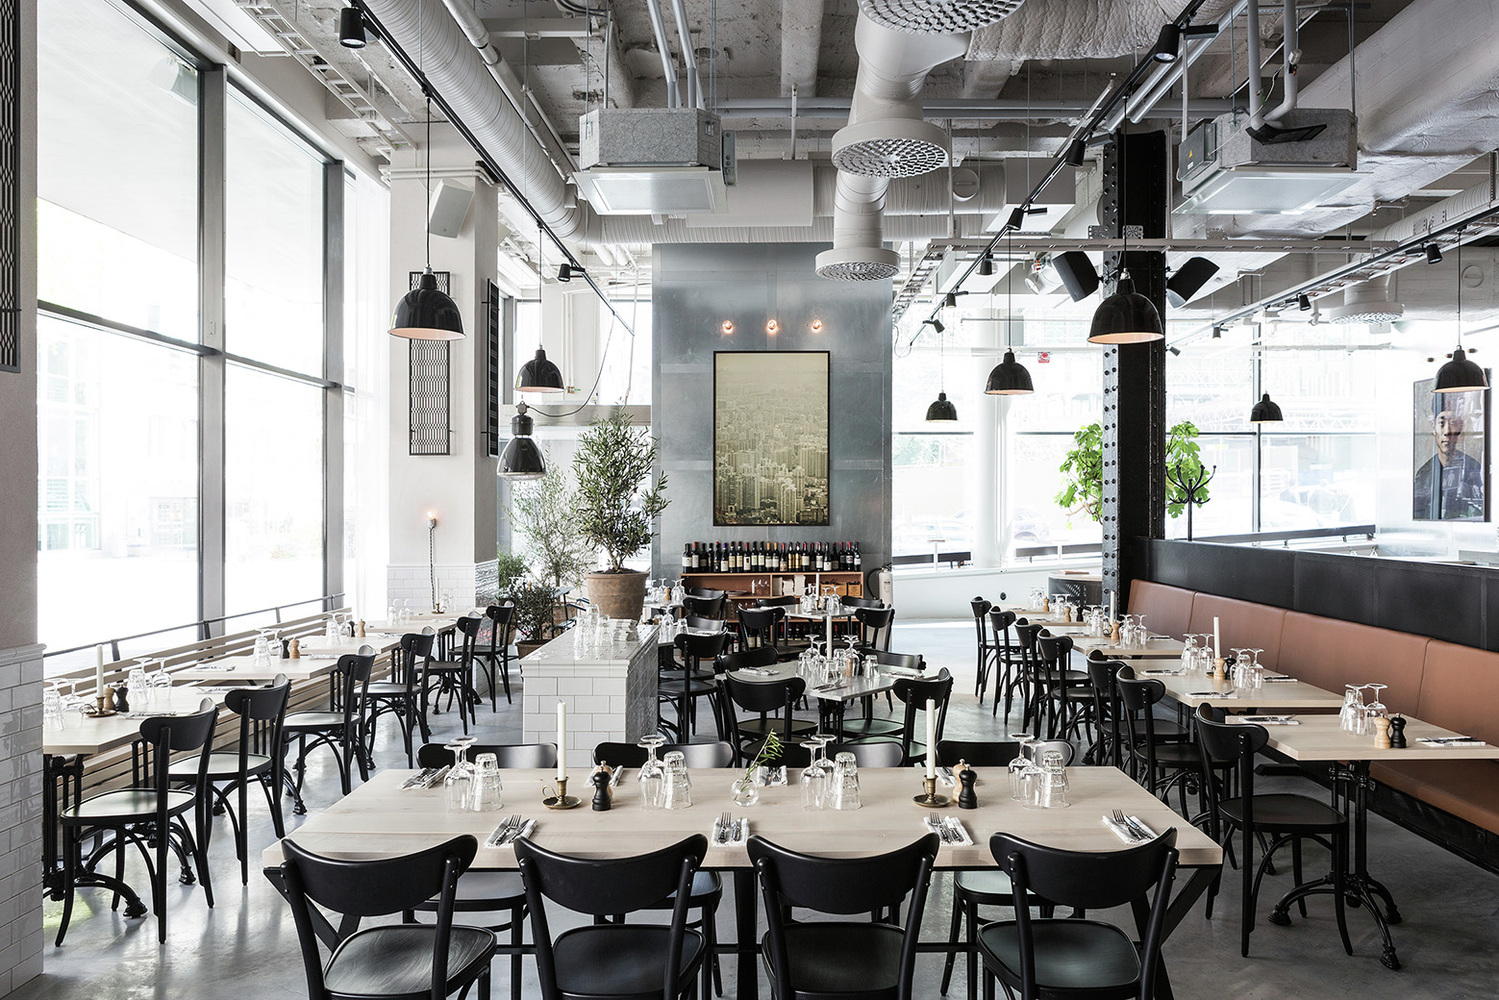 Usine Restaurant is inspired by Scandinavian minimalism  : 2Usine RestaurantRichard LindvallInspirationist from inspirationist.net size 1499 x 1000 jpeg 727kB